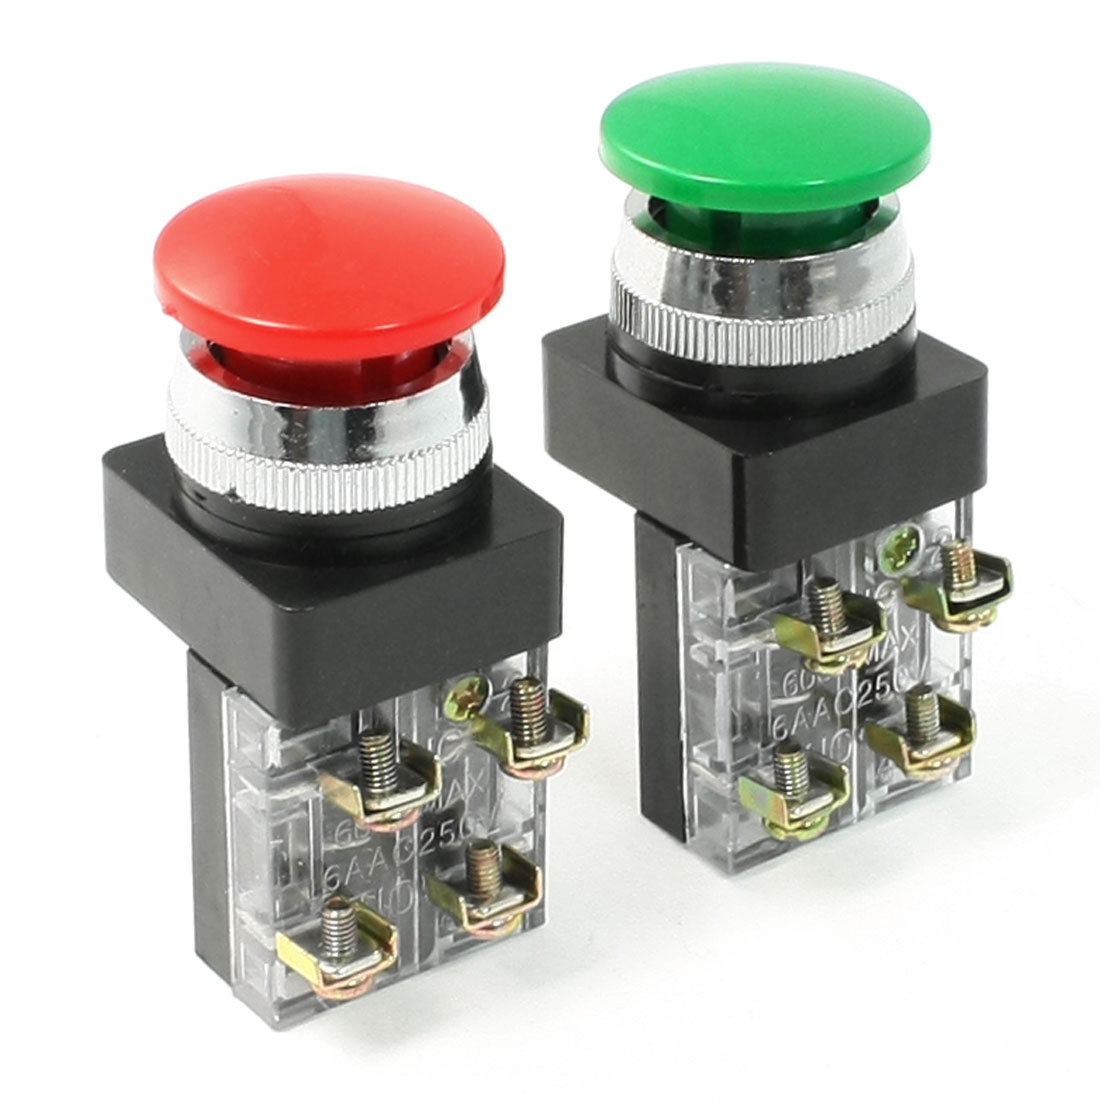 AC-250V-6A-Green-Red-Sign-Mushroom-Momentary-Pushbutton-Switch-Non-Lock-SPDT